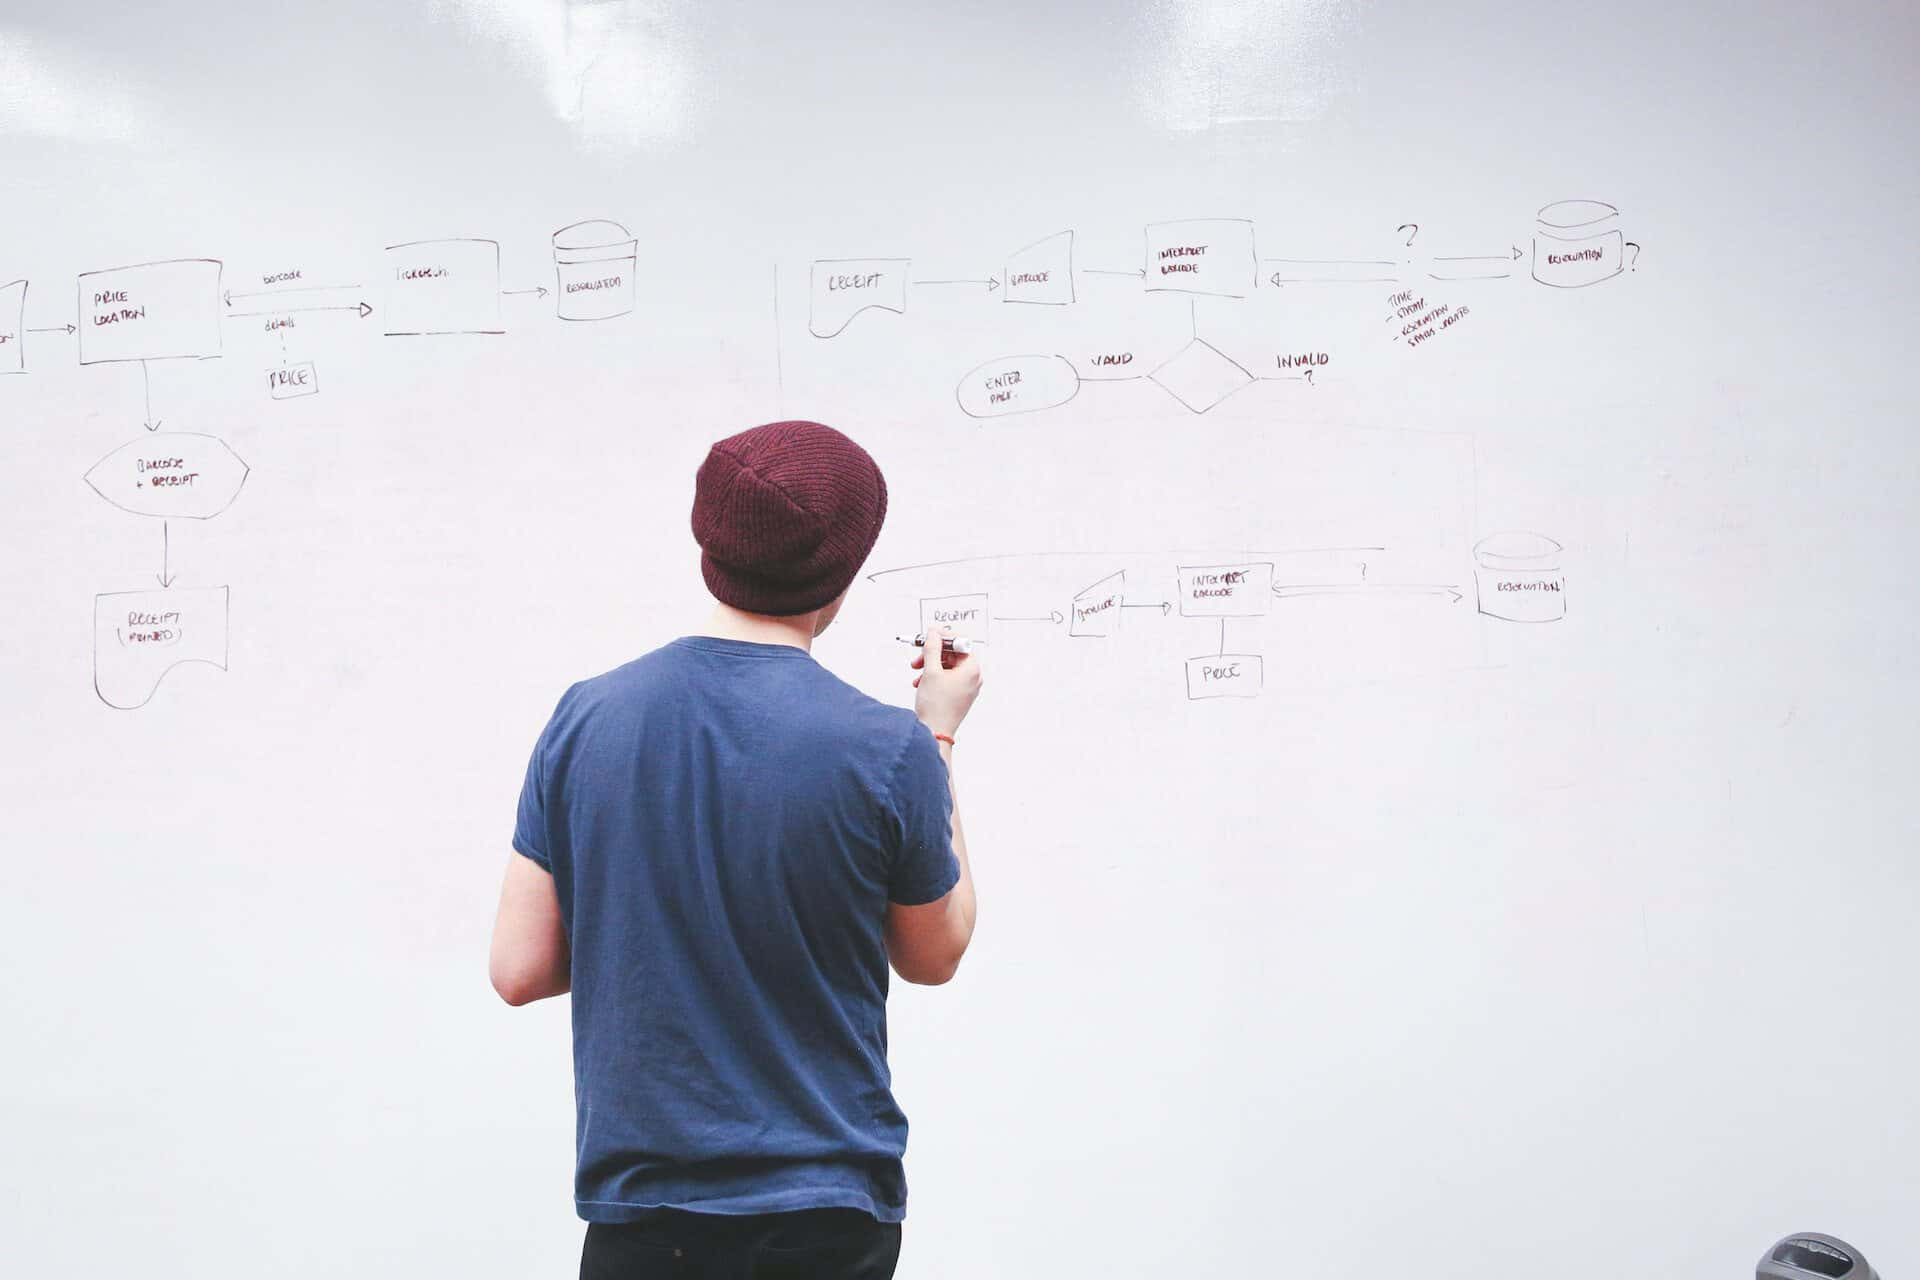 Man creating a process on a whiteboard, e.g. a Content Marketing process